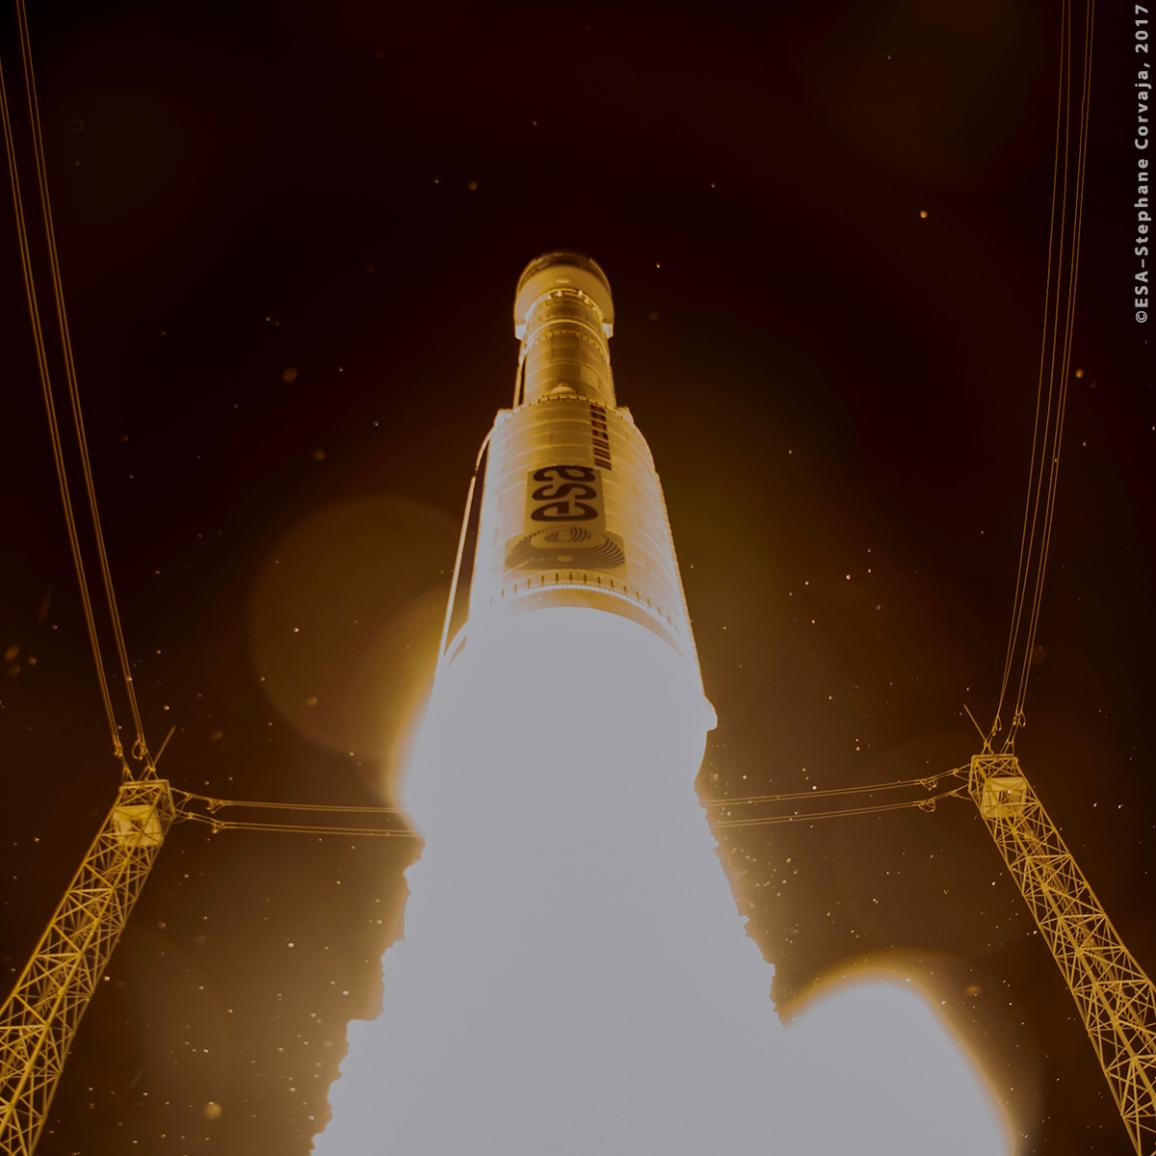 Liftoff of Sentinel-2B on a Vega launcher from Europe's Spaceport in French Guiana at 01:49 GMT (02:49 CET) on 7 March 2017. Sentinel-2B is the second satellite in the Sentinel-2 mission for Europe's Copernicus environment monitoring programme. ©ESA–Stephane Corvaja, 2017